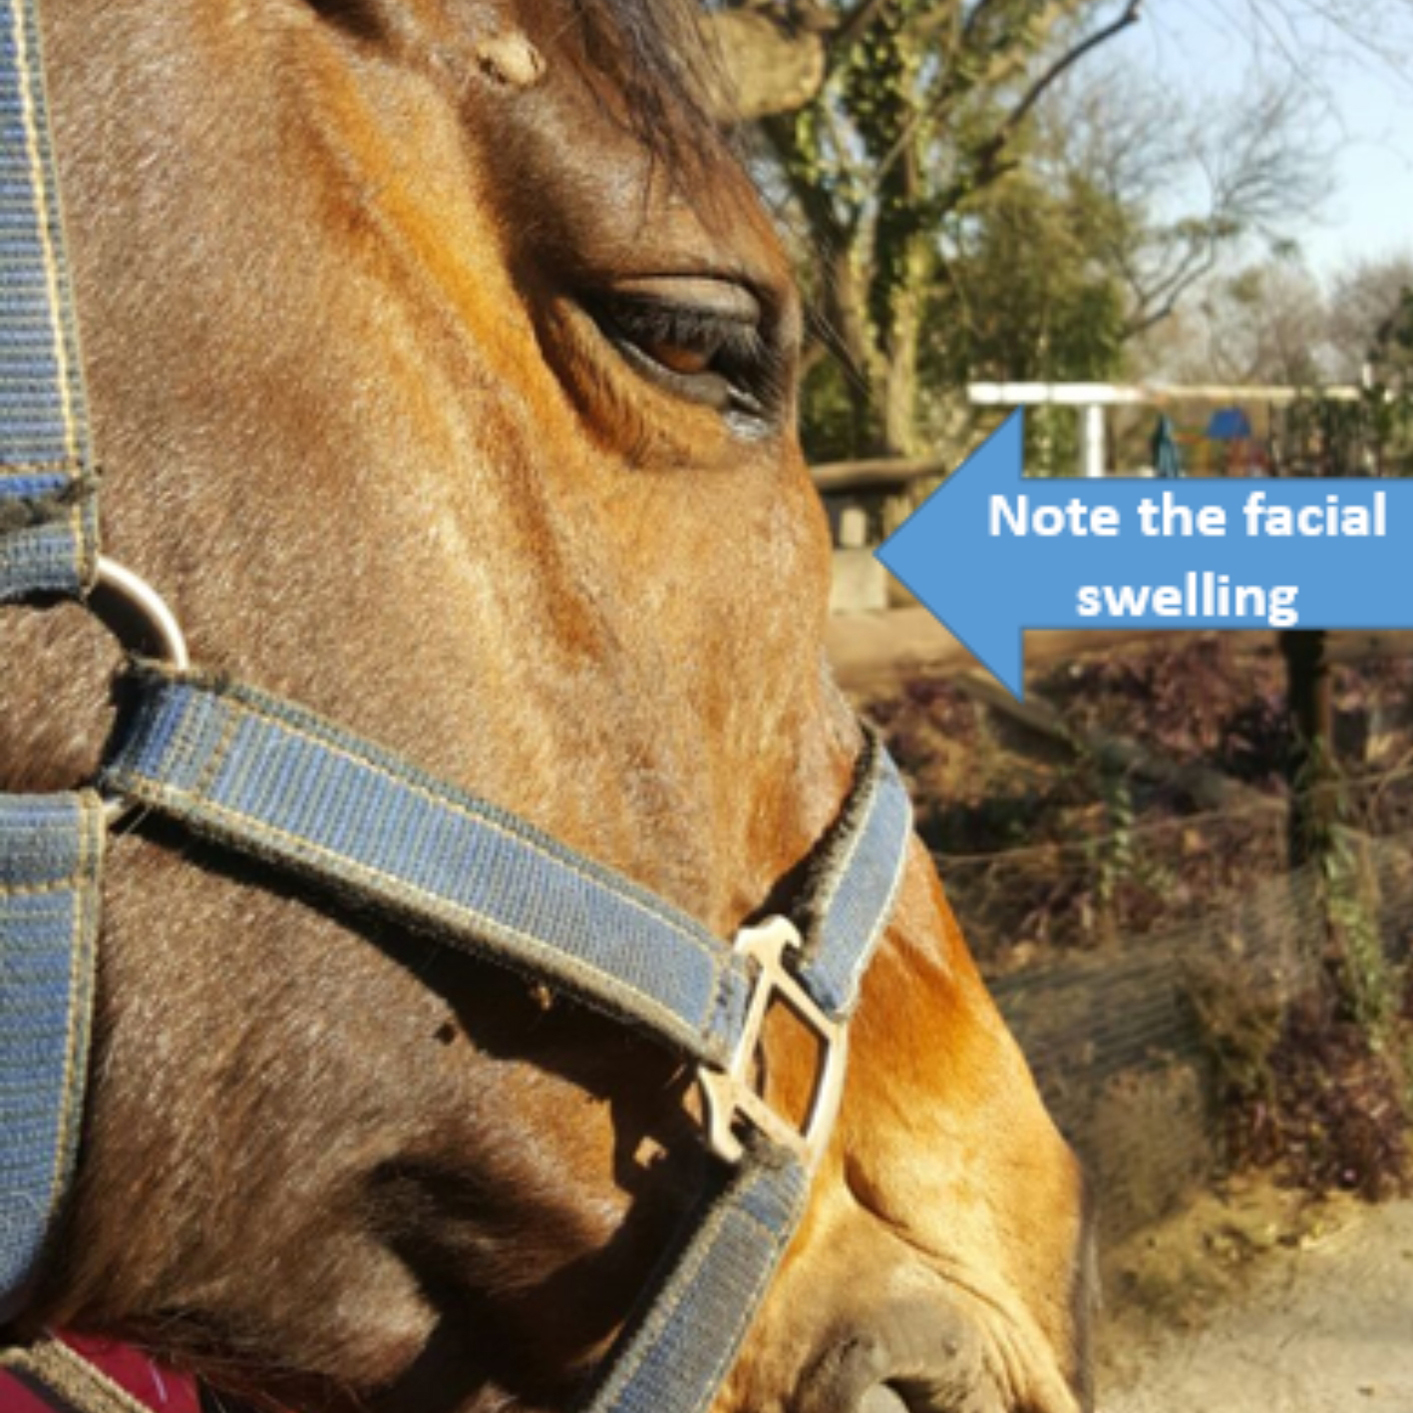 Apologise, equine facial swelling magnificent